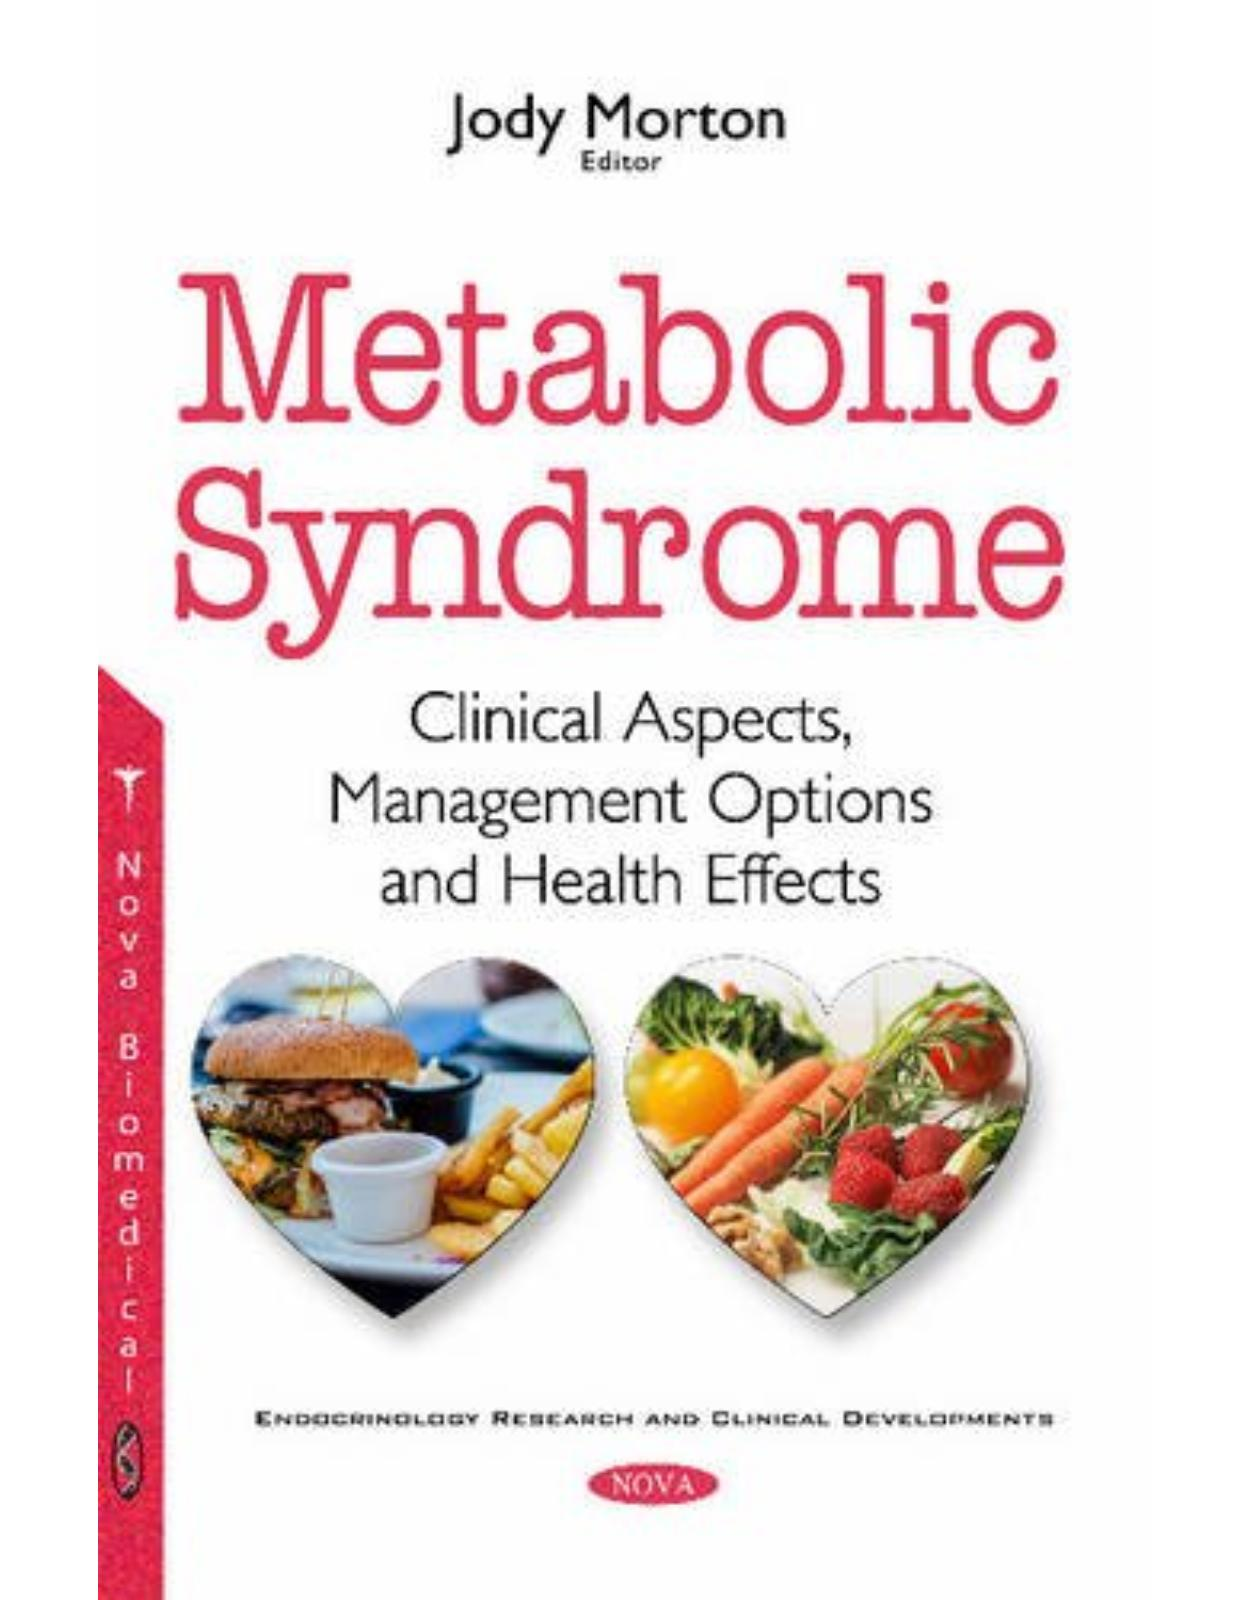 Metabolic Syndrome: Clinical Aspects, Management Options & Health Effects